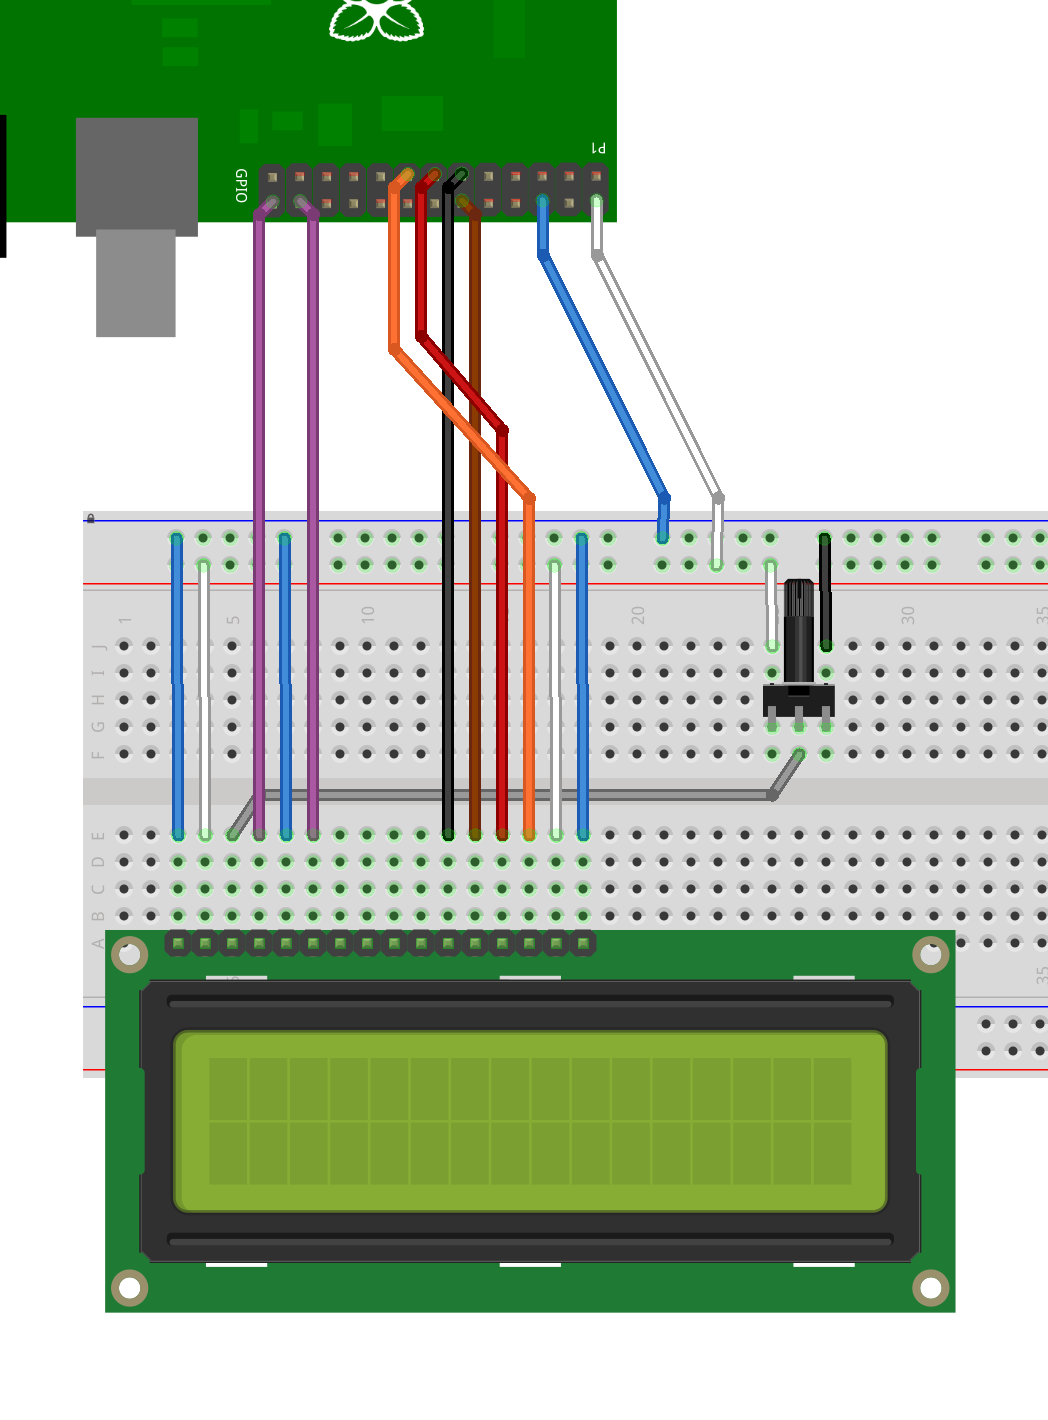 raspberry pi wiringpi lcd library wiring pilcd connected to pi in 4 bit mode